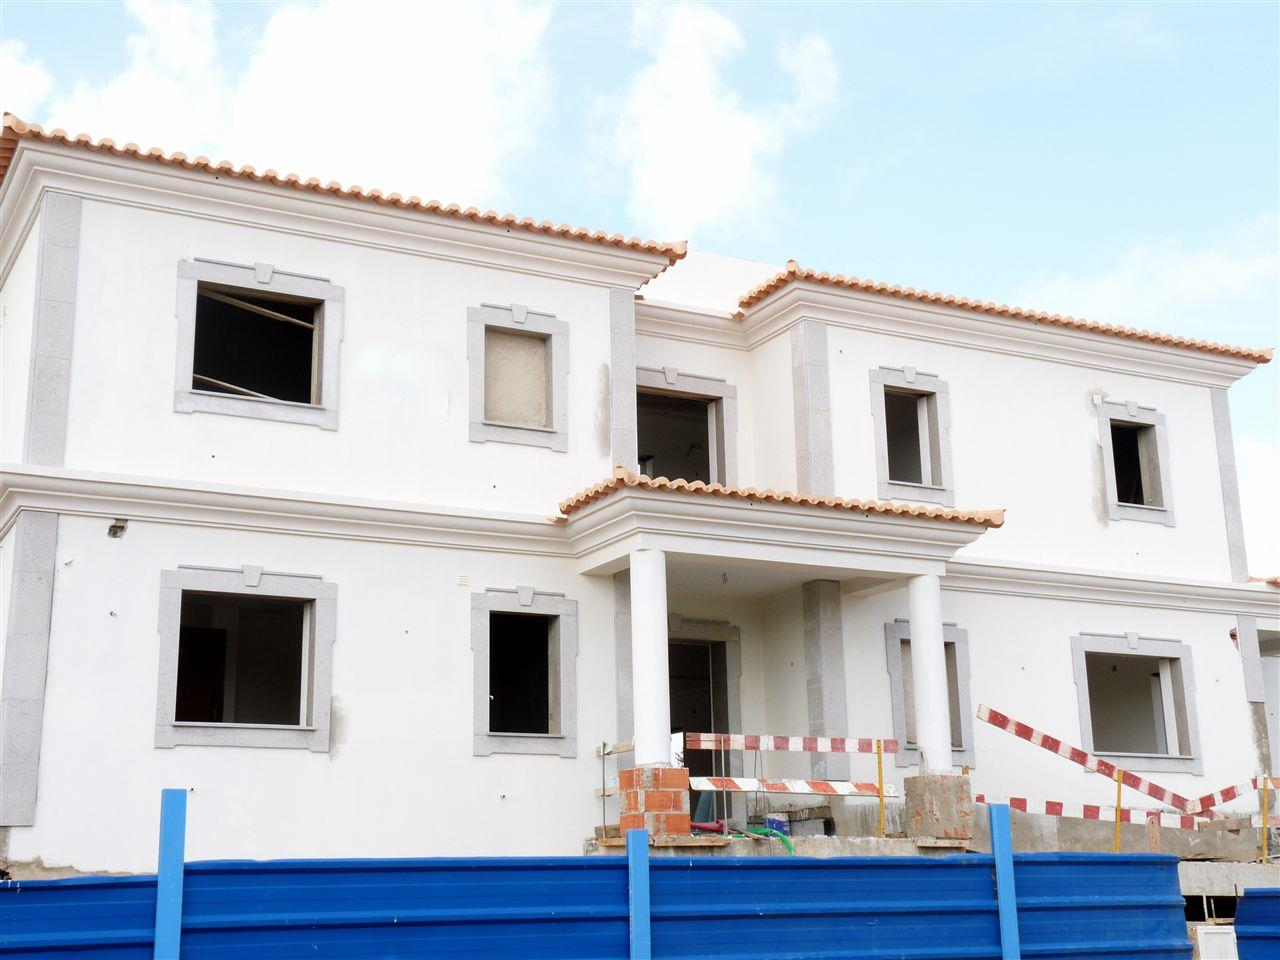 Tek Ailelik Ev için Satış at House, 5 bedrooms, for Sale Loule, Algarve 8125-307 Portekiz